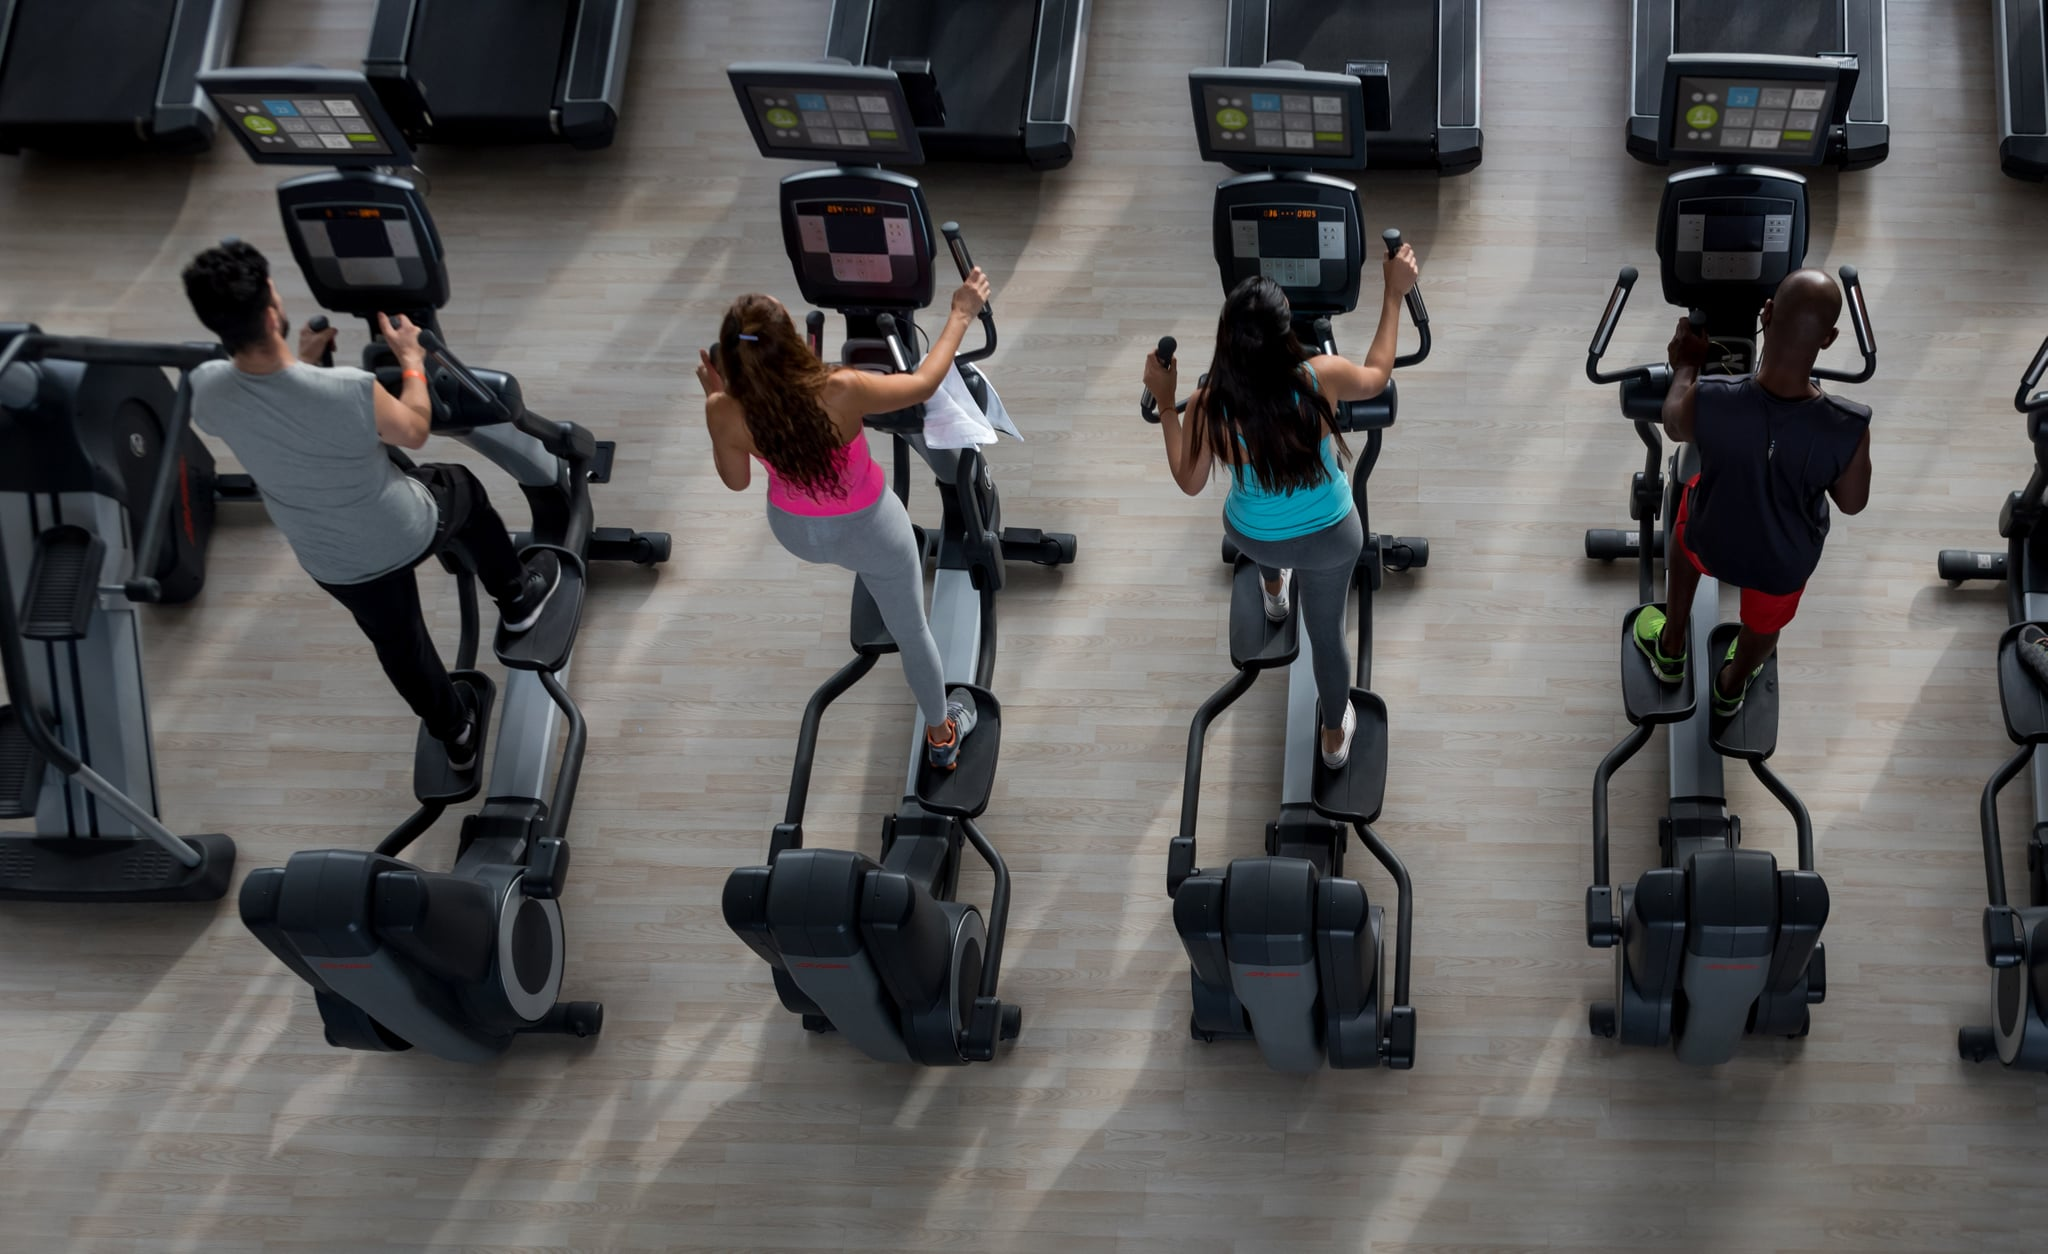 Group of people at the gym on the elliptical machine exercising - High angle view **IMAGES ON SCREEN WERE MADE FORM SCRATCH BY US**